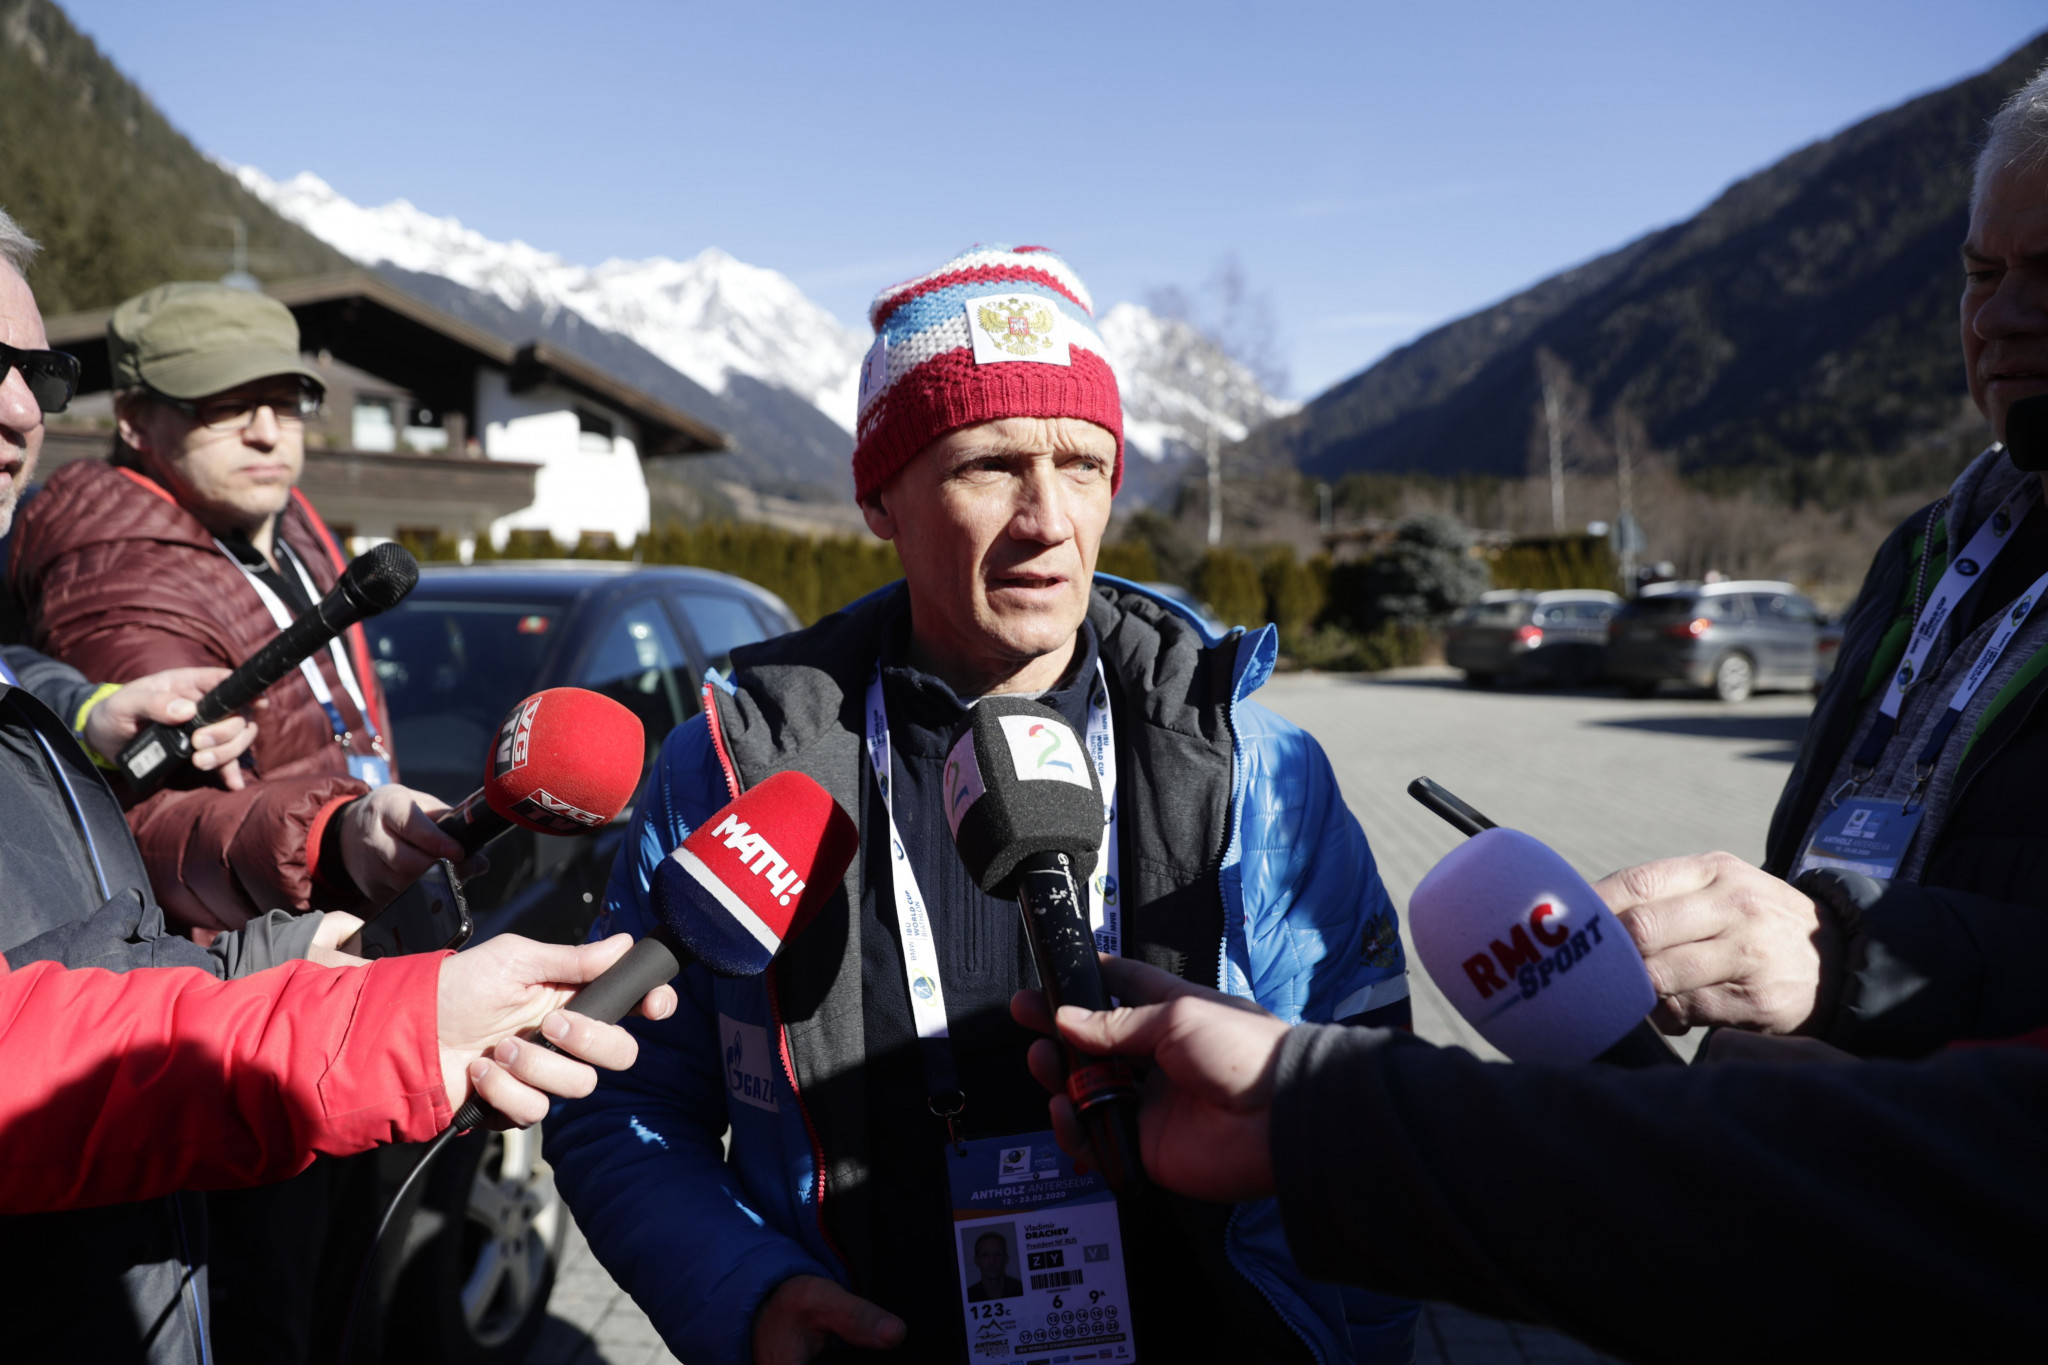 Drachev resigns as Russian Biathlon Union President with Maigourov poised to assume role